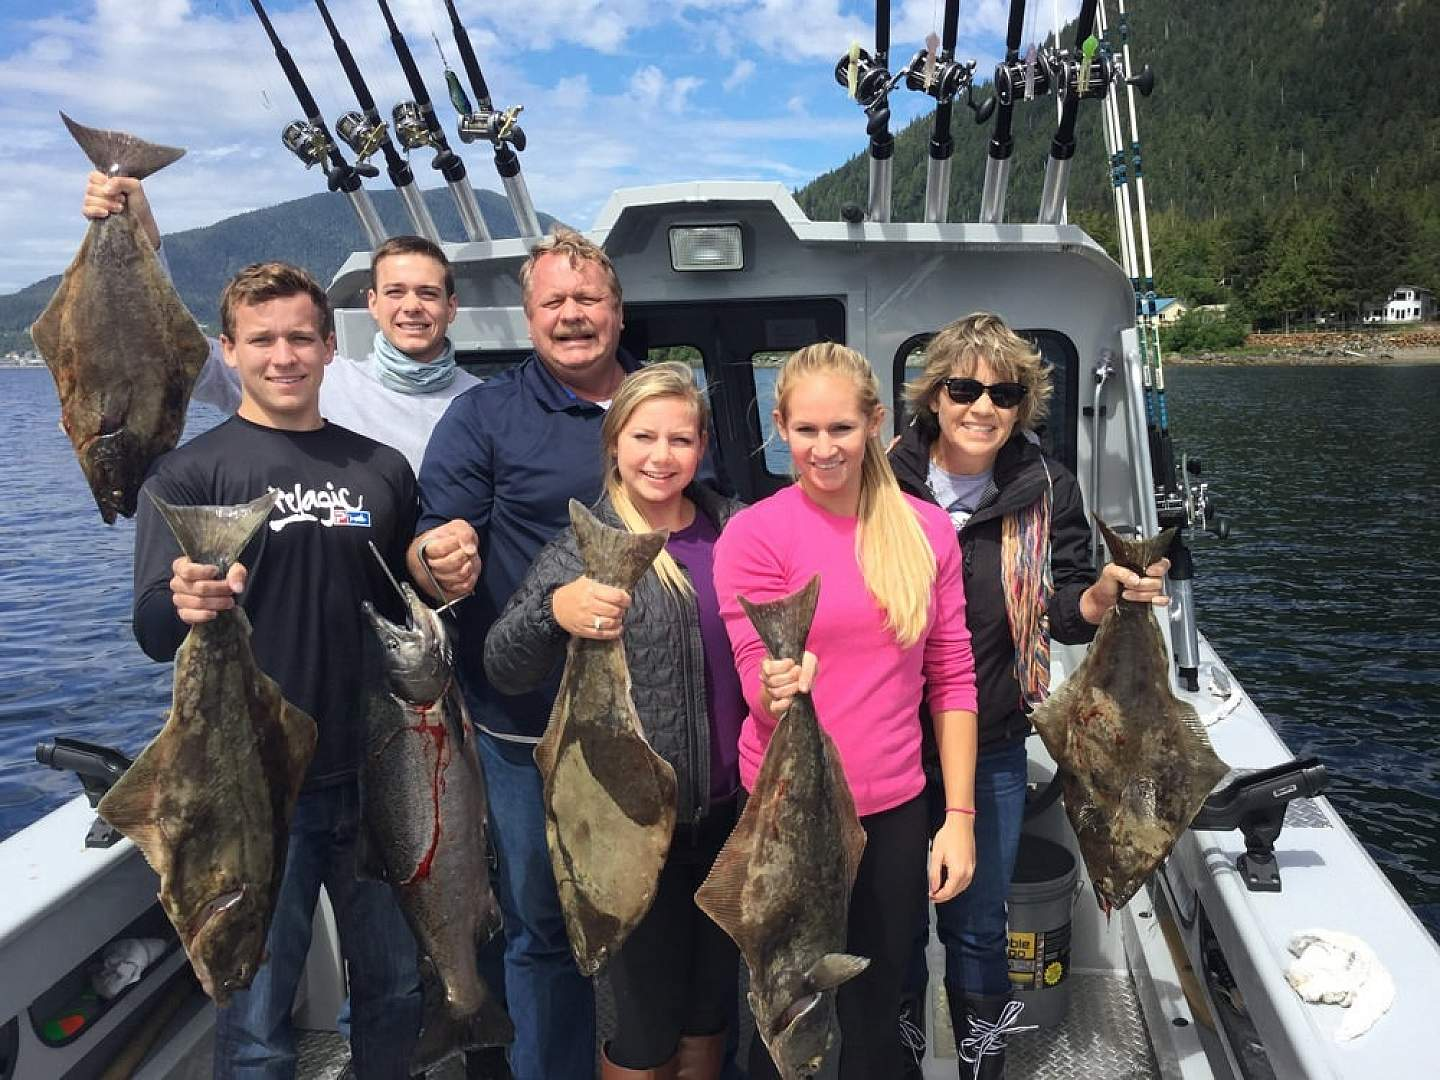 Fishing Charters in Ketchikan operate May til September with trips starting at 2 hours